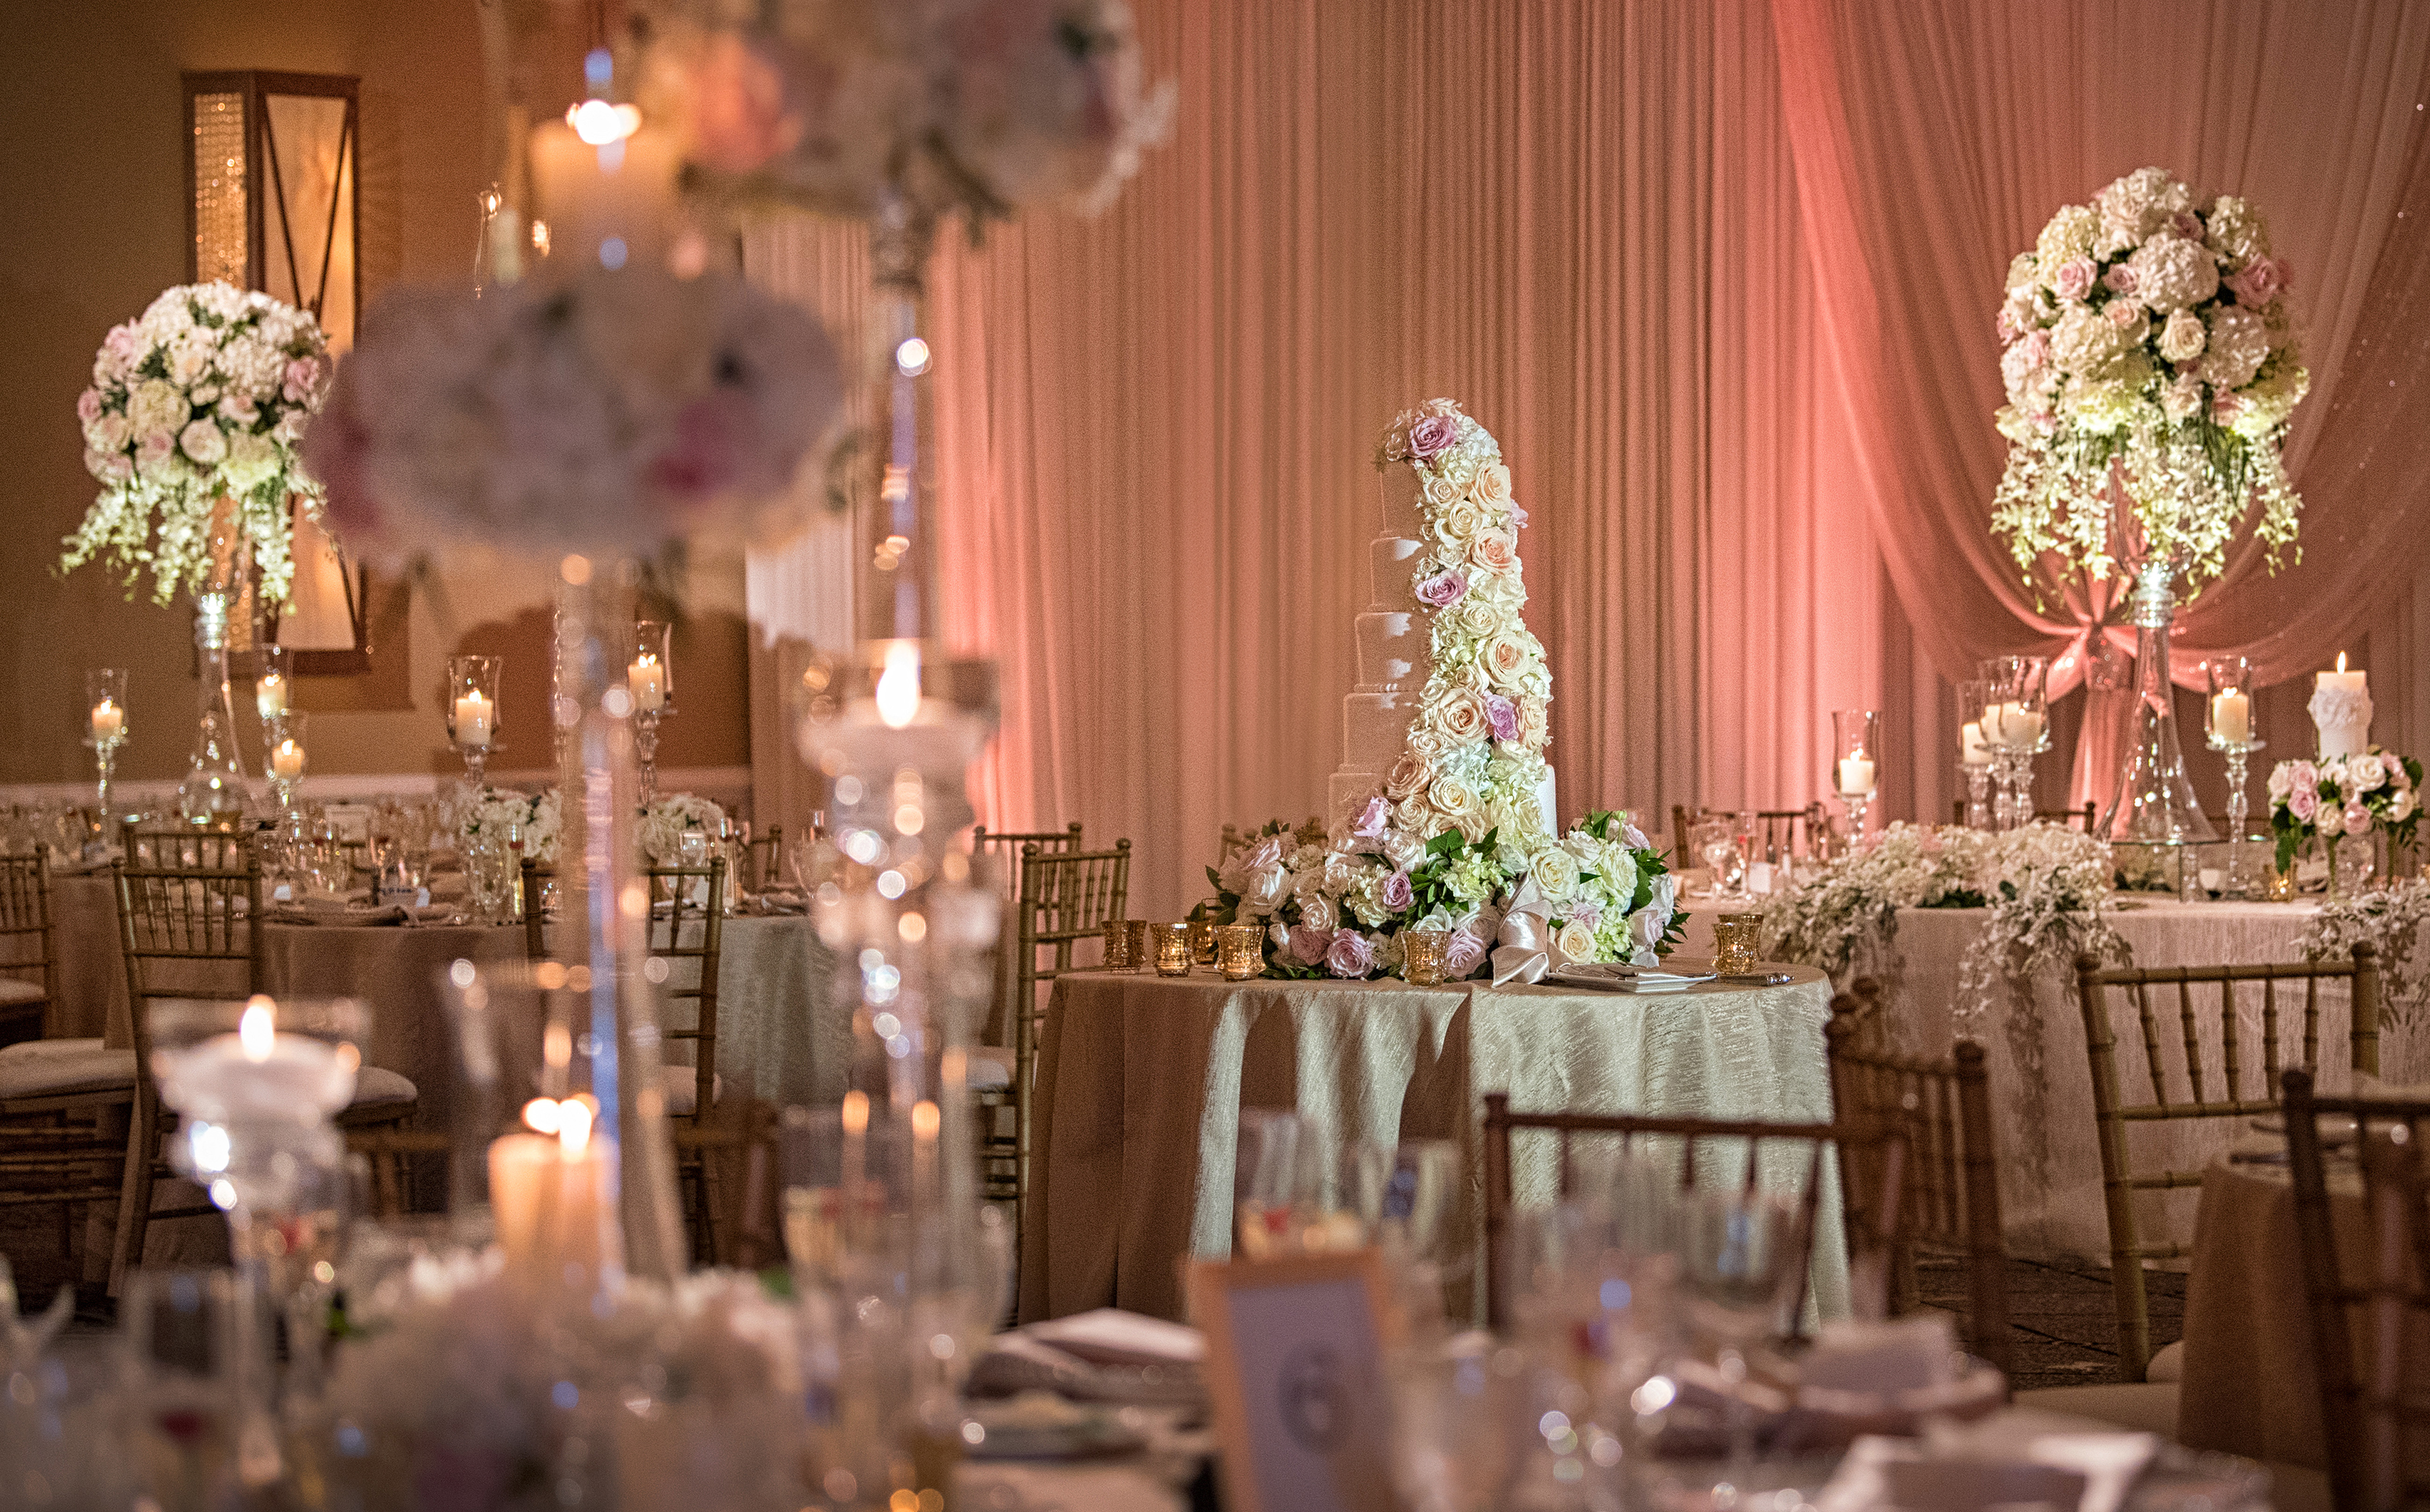 Beautiful wedding at Concorde Banquets in Kildeer, IL. Flowers and décor by Yanni Design Studio. Tom Manikas of Manikas Designs & Events planned and made the day enjoyable and fun.